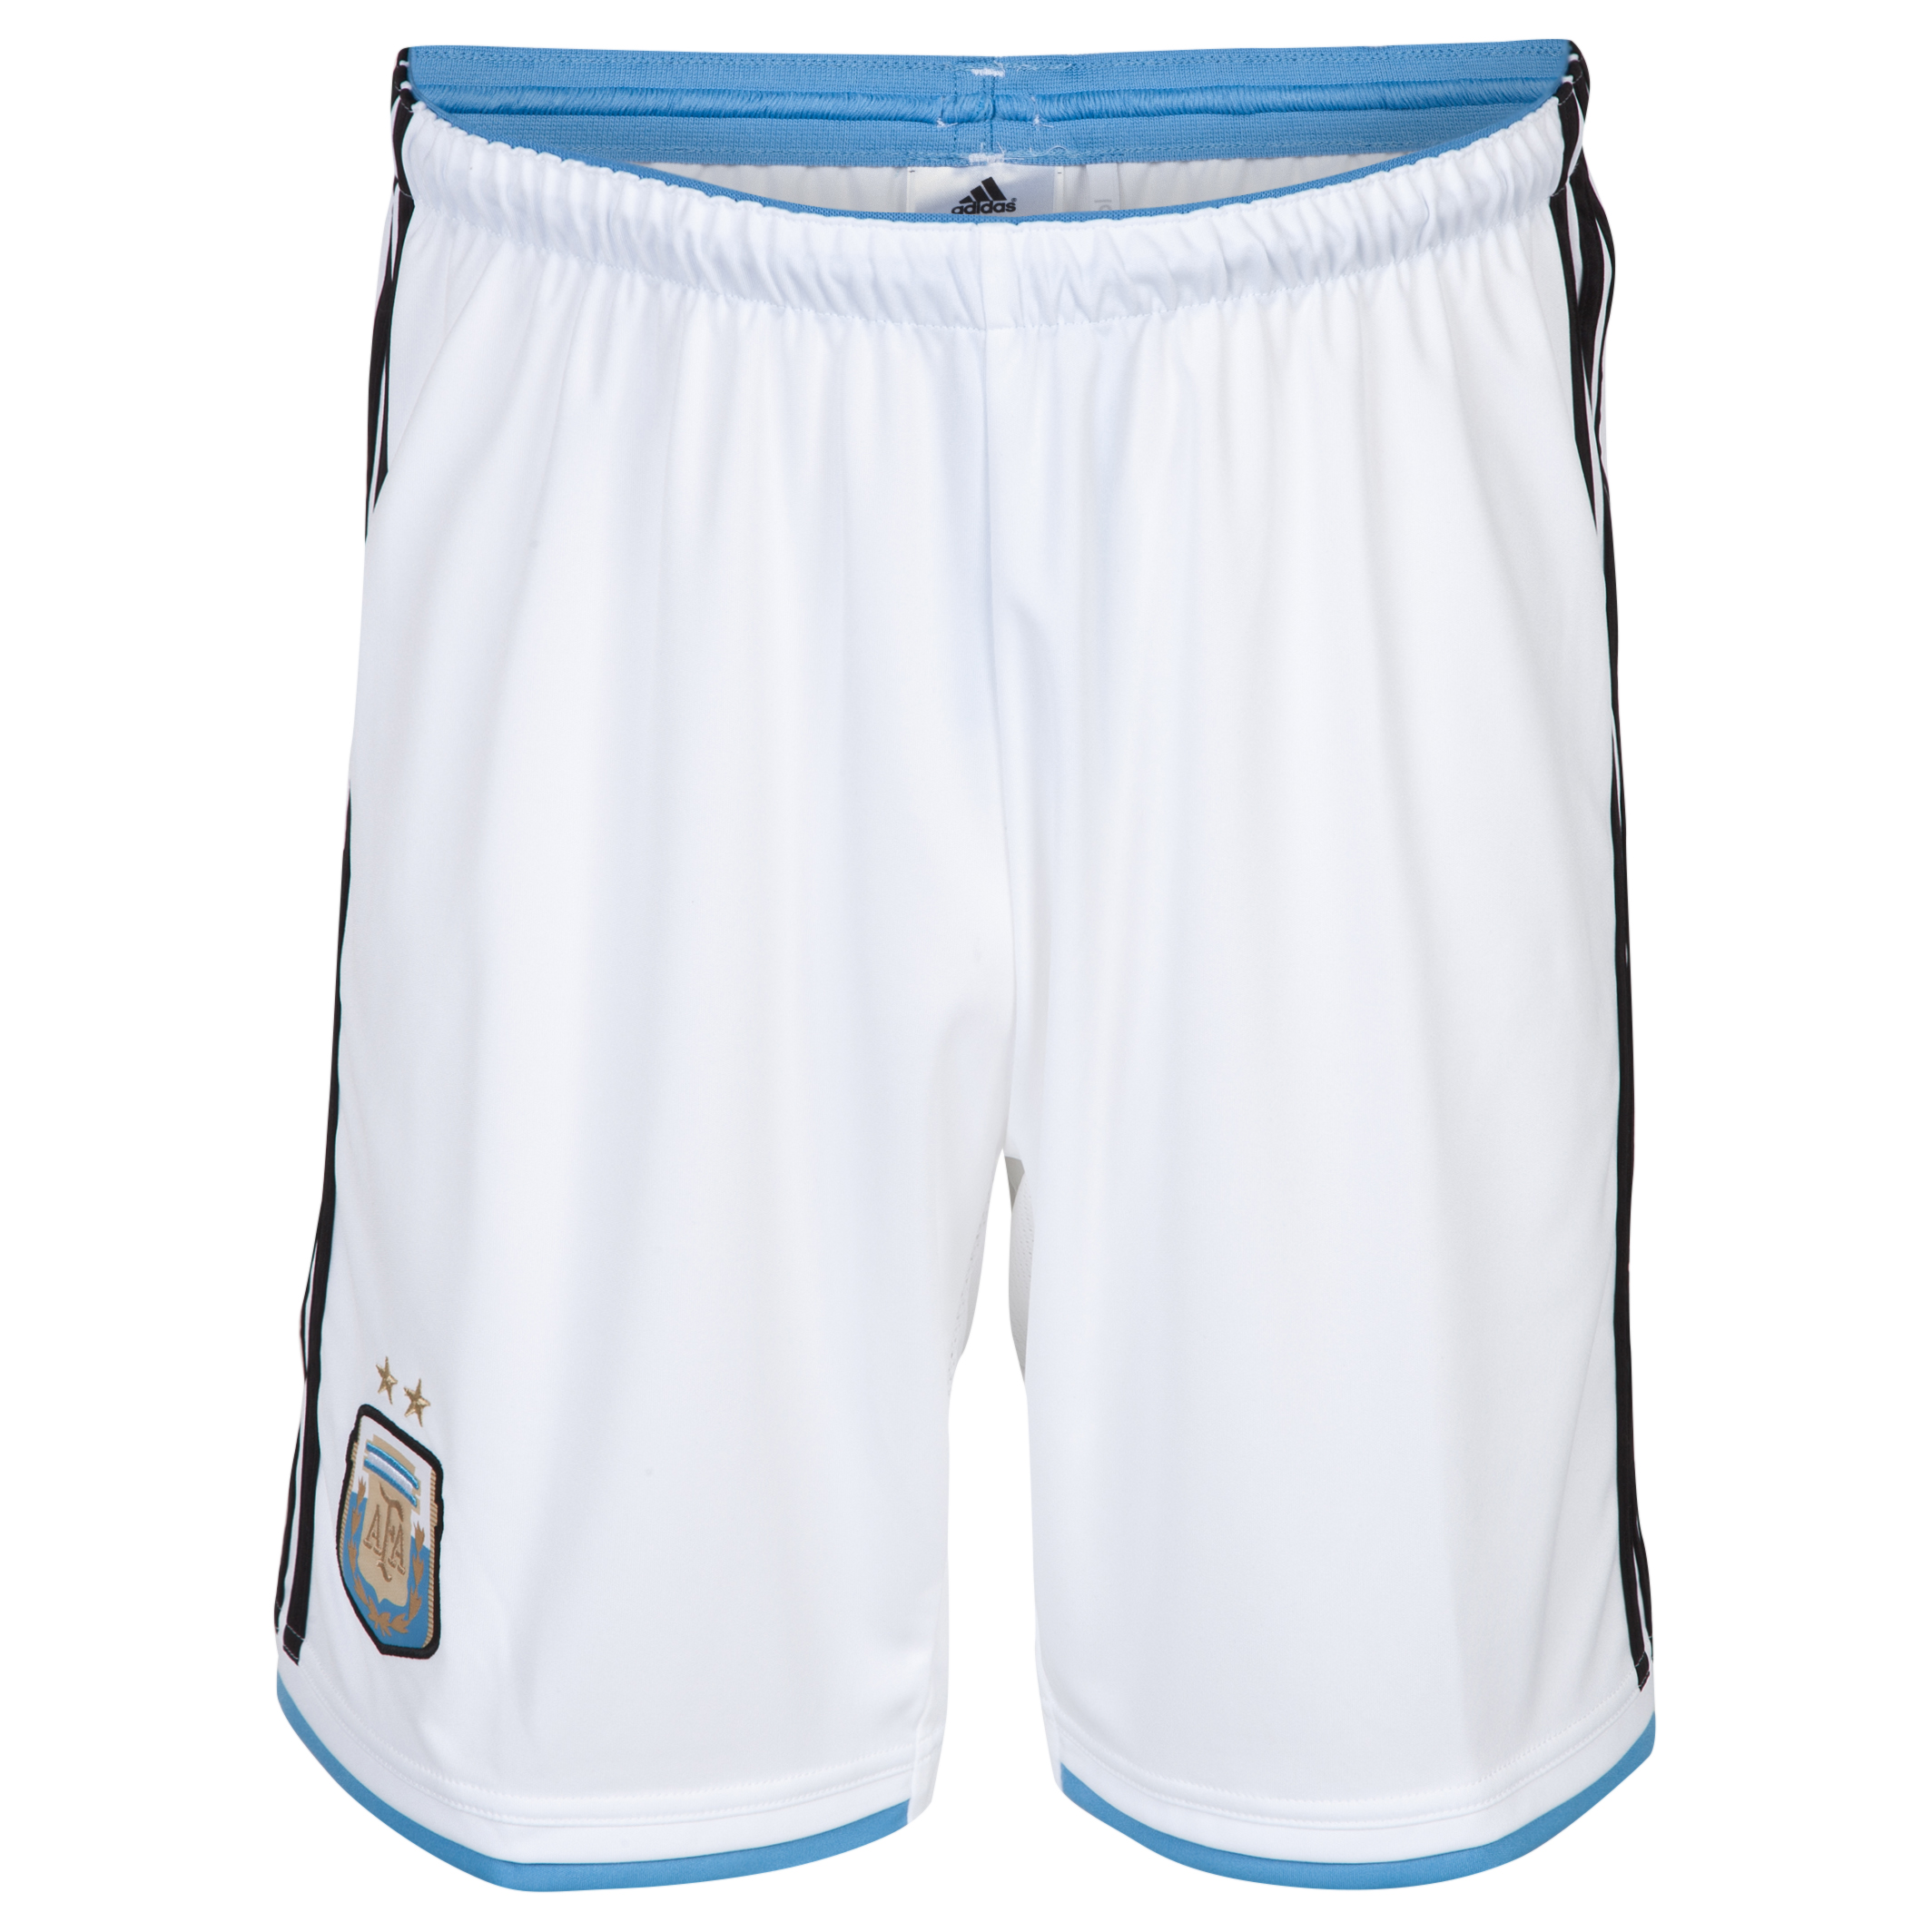 Argentina Home Shorts 2013/14